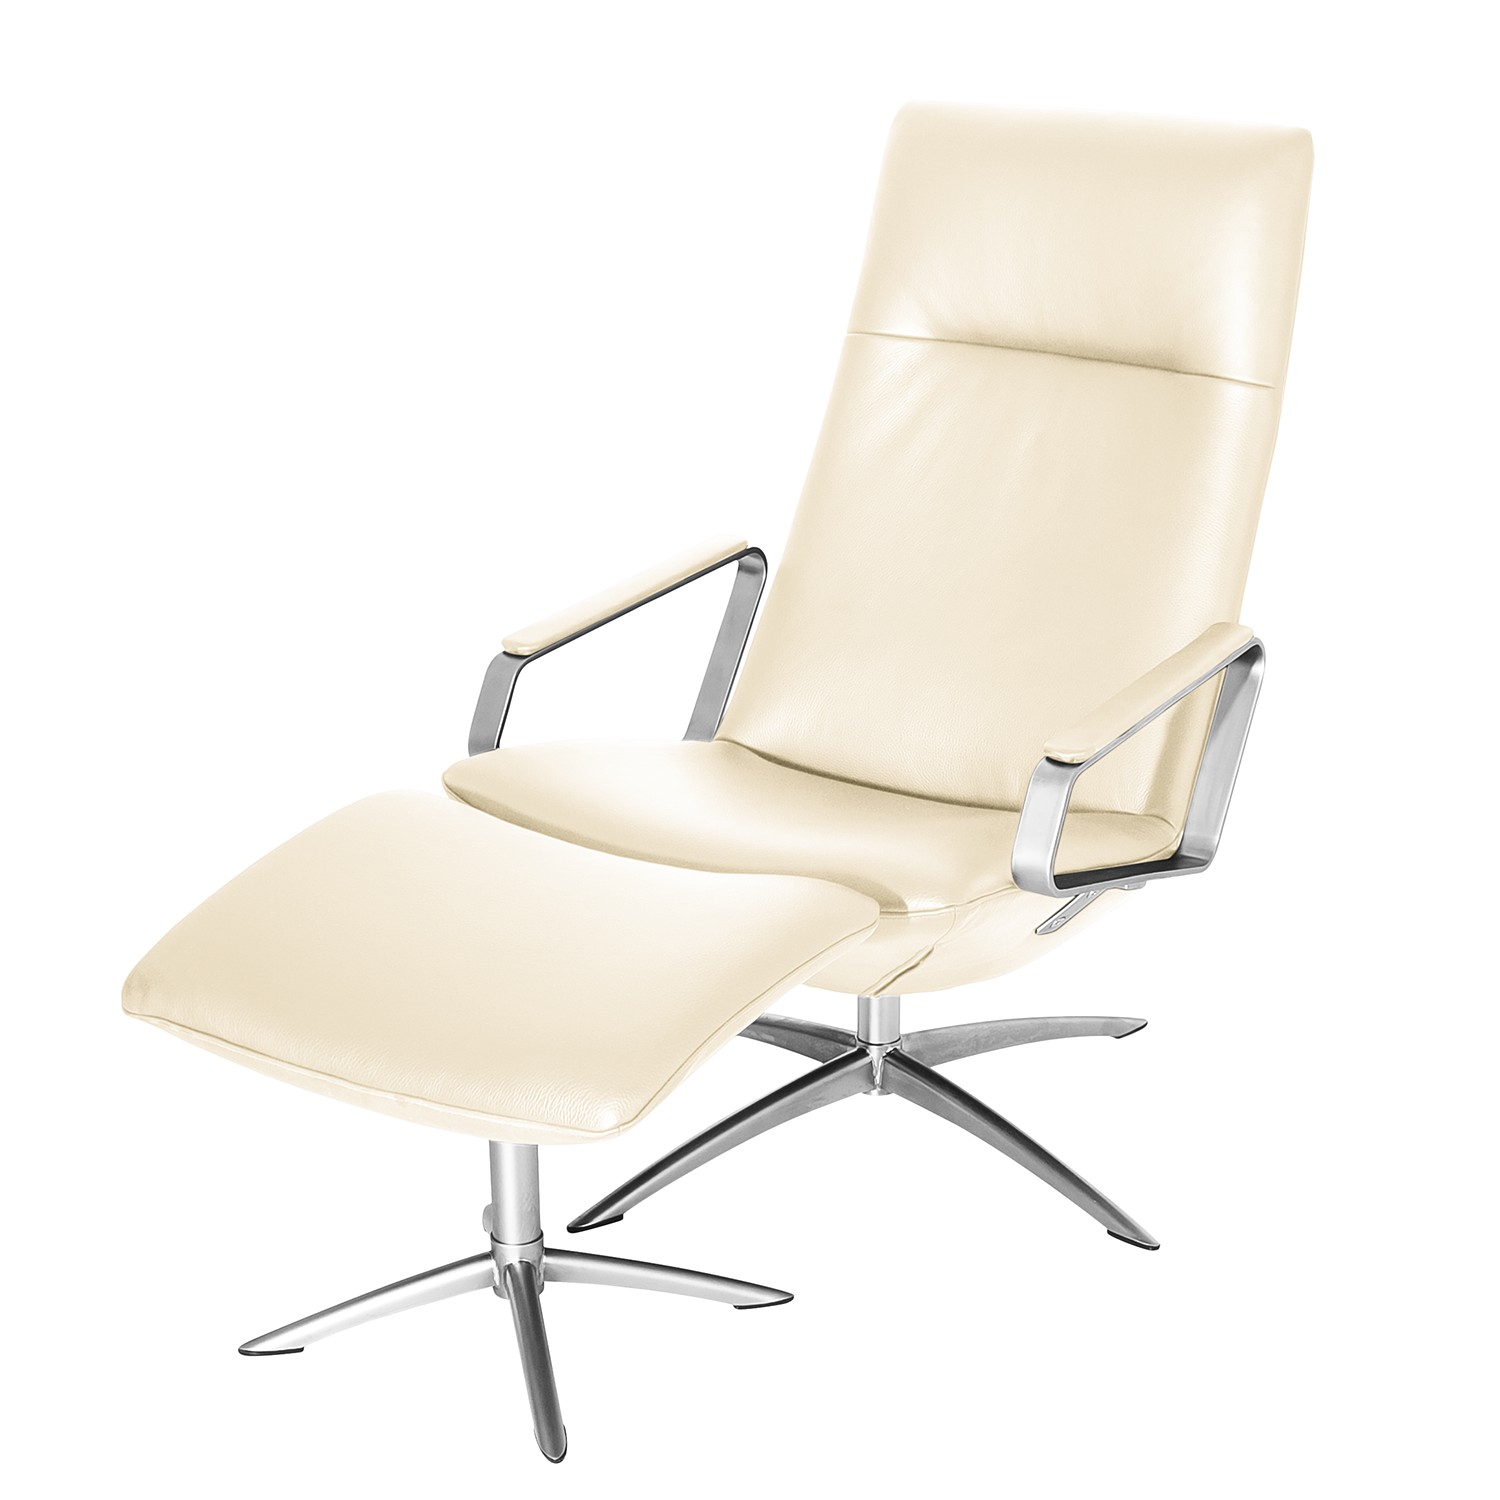 Fauteuil relax Pargas